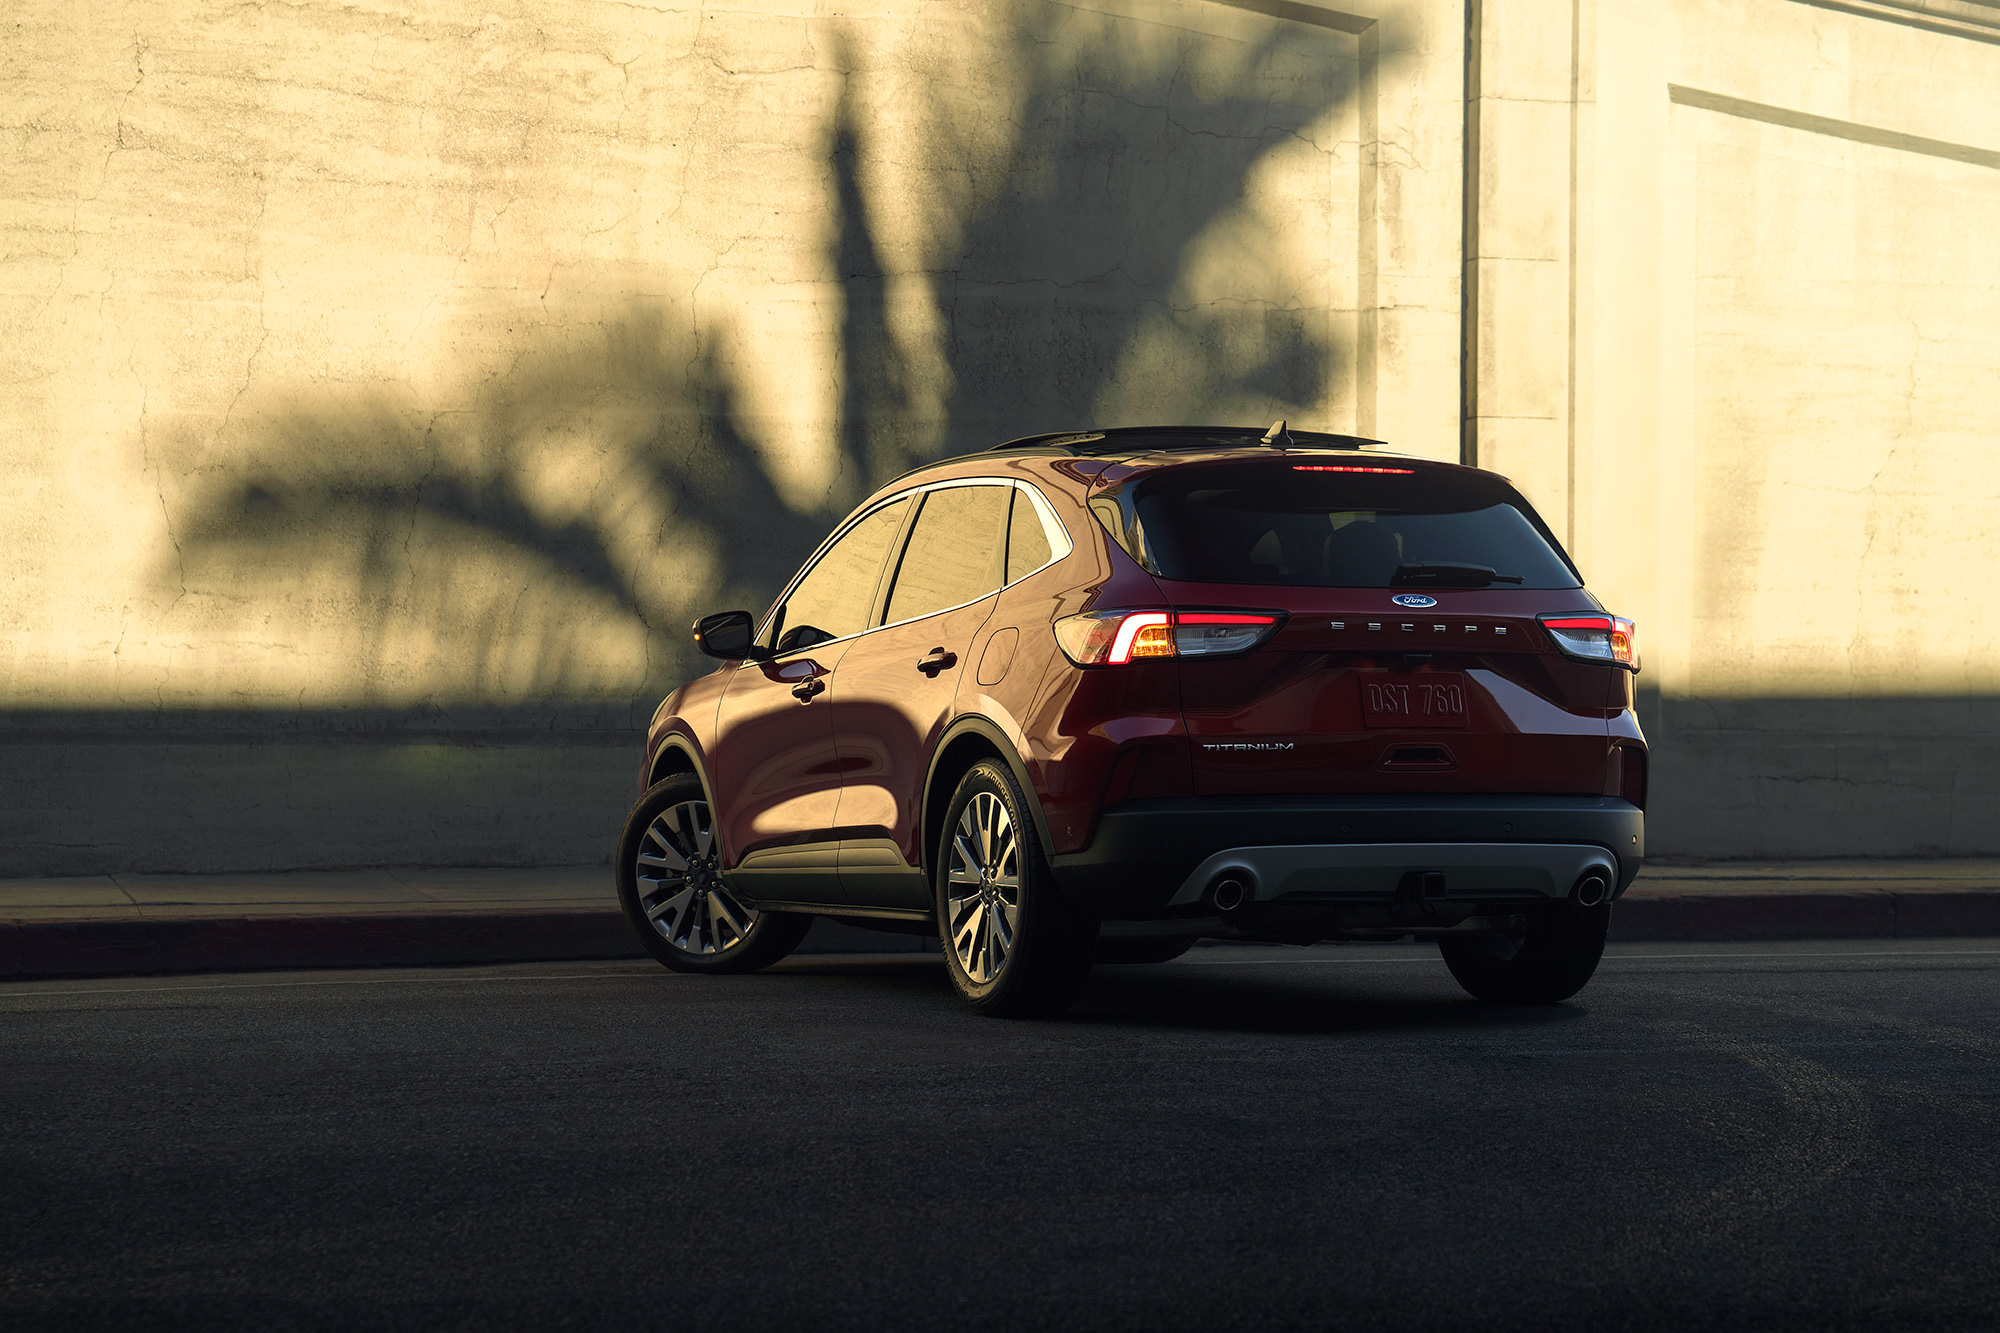 2020 Ford Escape in front of palm tree shadow